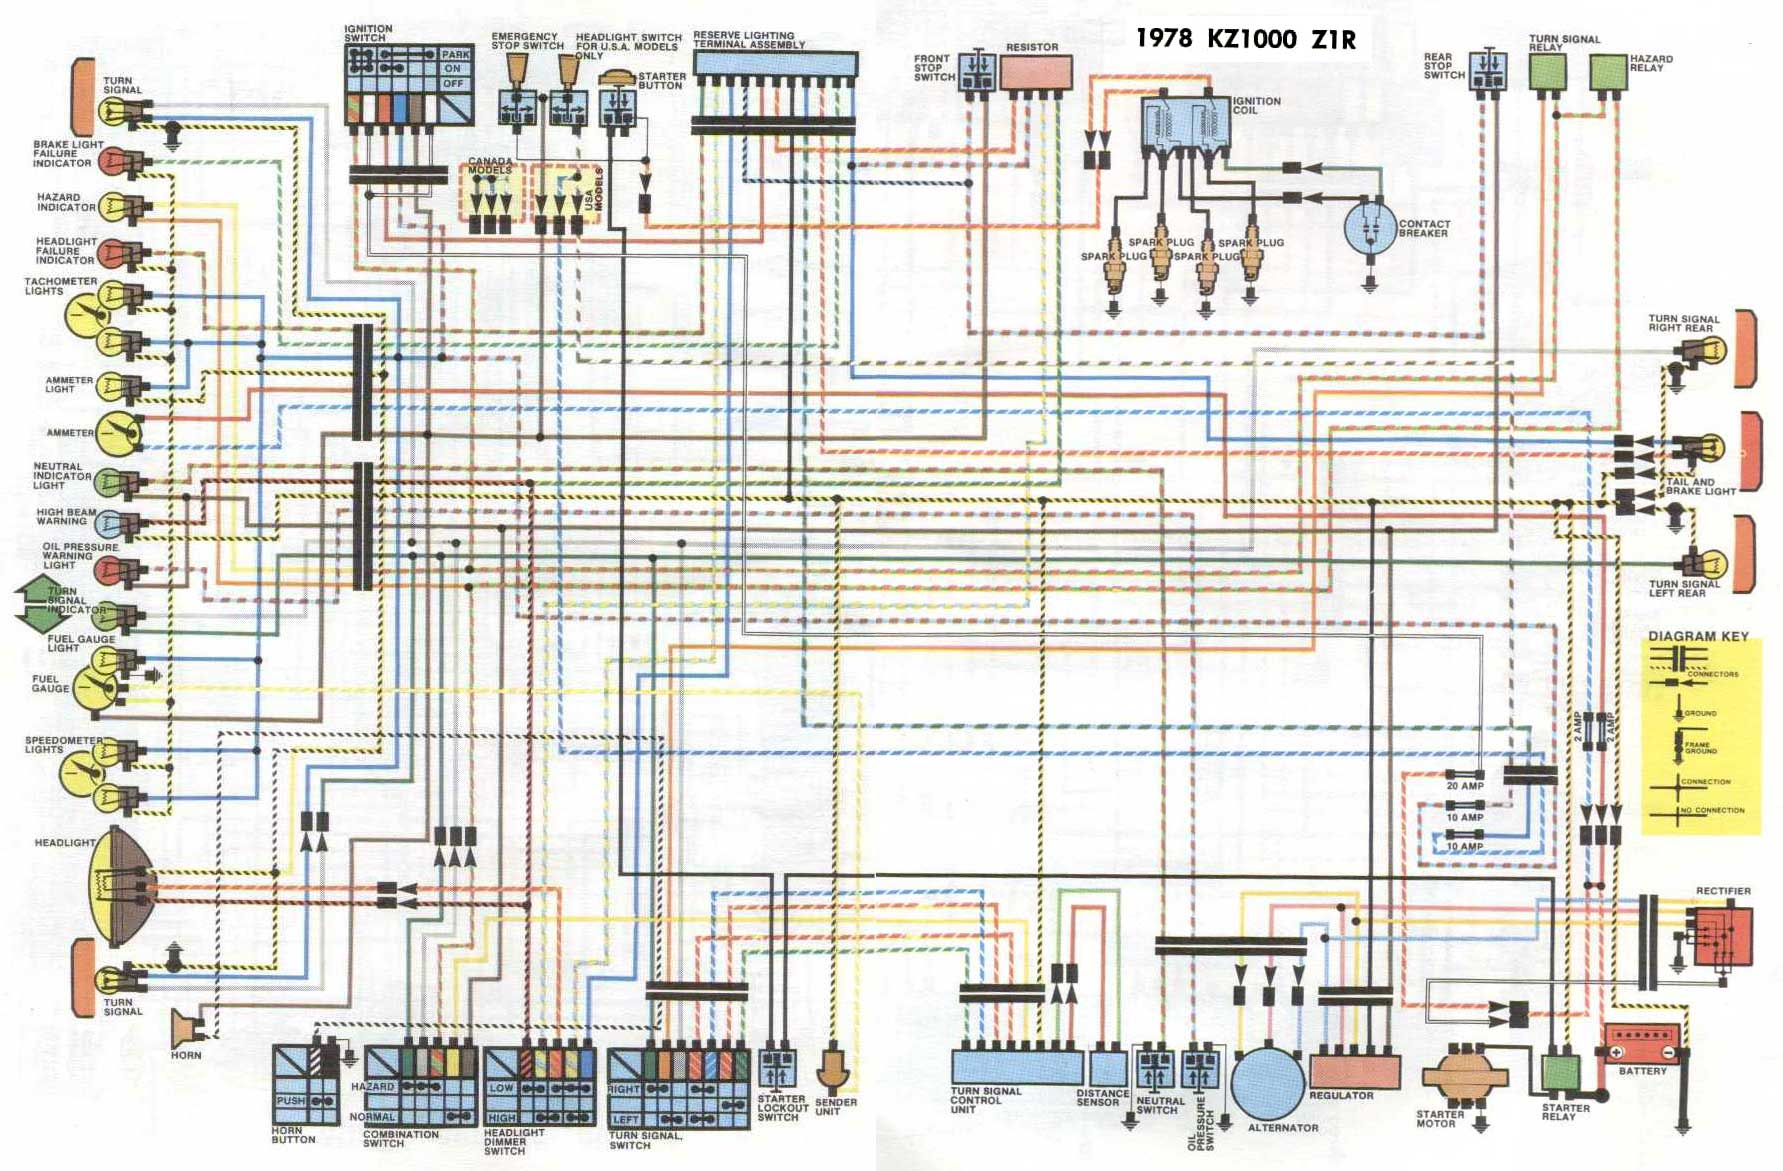 Wiring Diagram Kawasaki Kz1000 Z1r Honda Cb750 Wire F9 1978 Automotive Block U2022 Dorable